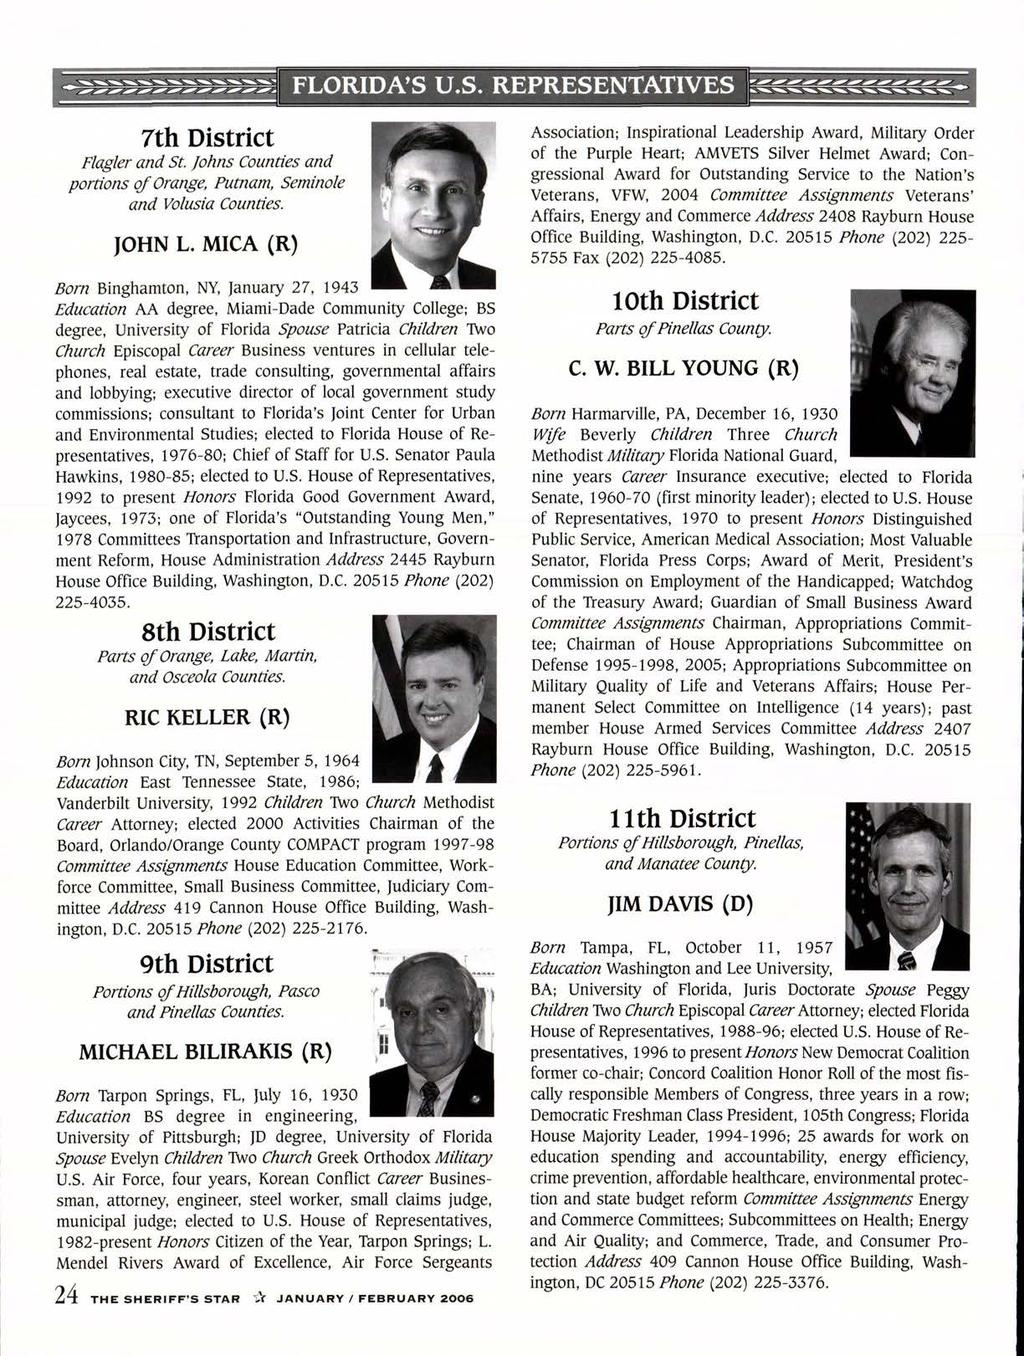 Sheriff8 Star Guide To Government Annual Contents Pdf Florida Mediation Locations Ken Bowen Esq Pinellas 7th District Flagler And St Johns Counties Portions Of Orange Putnam